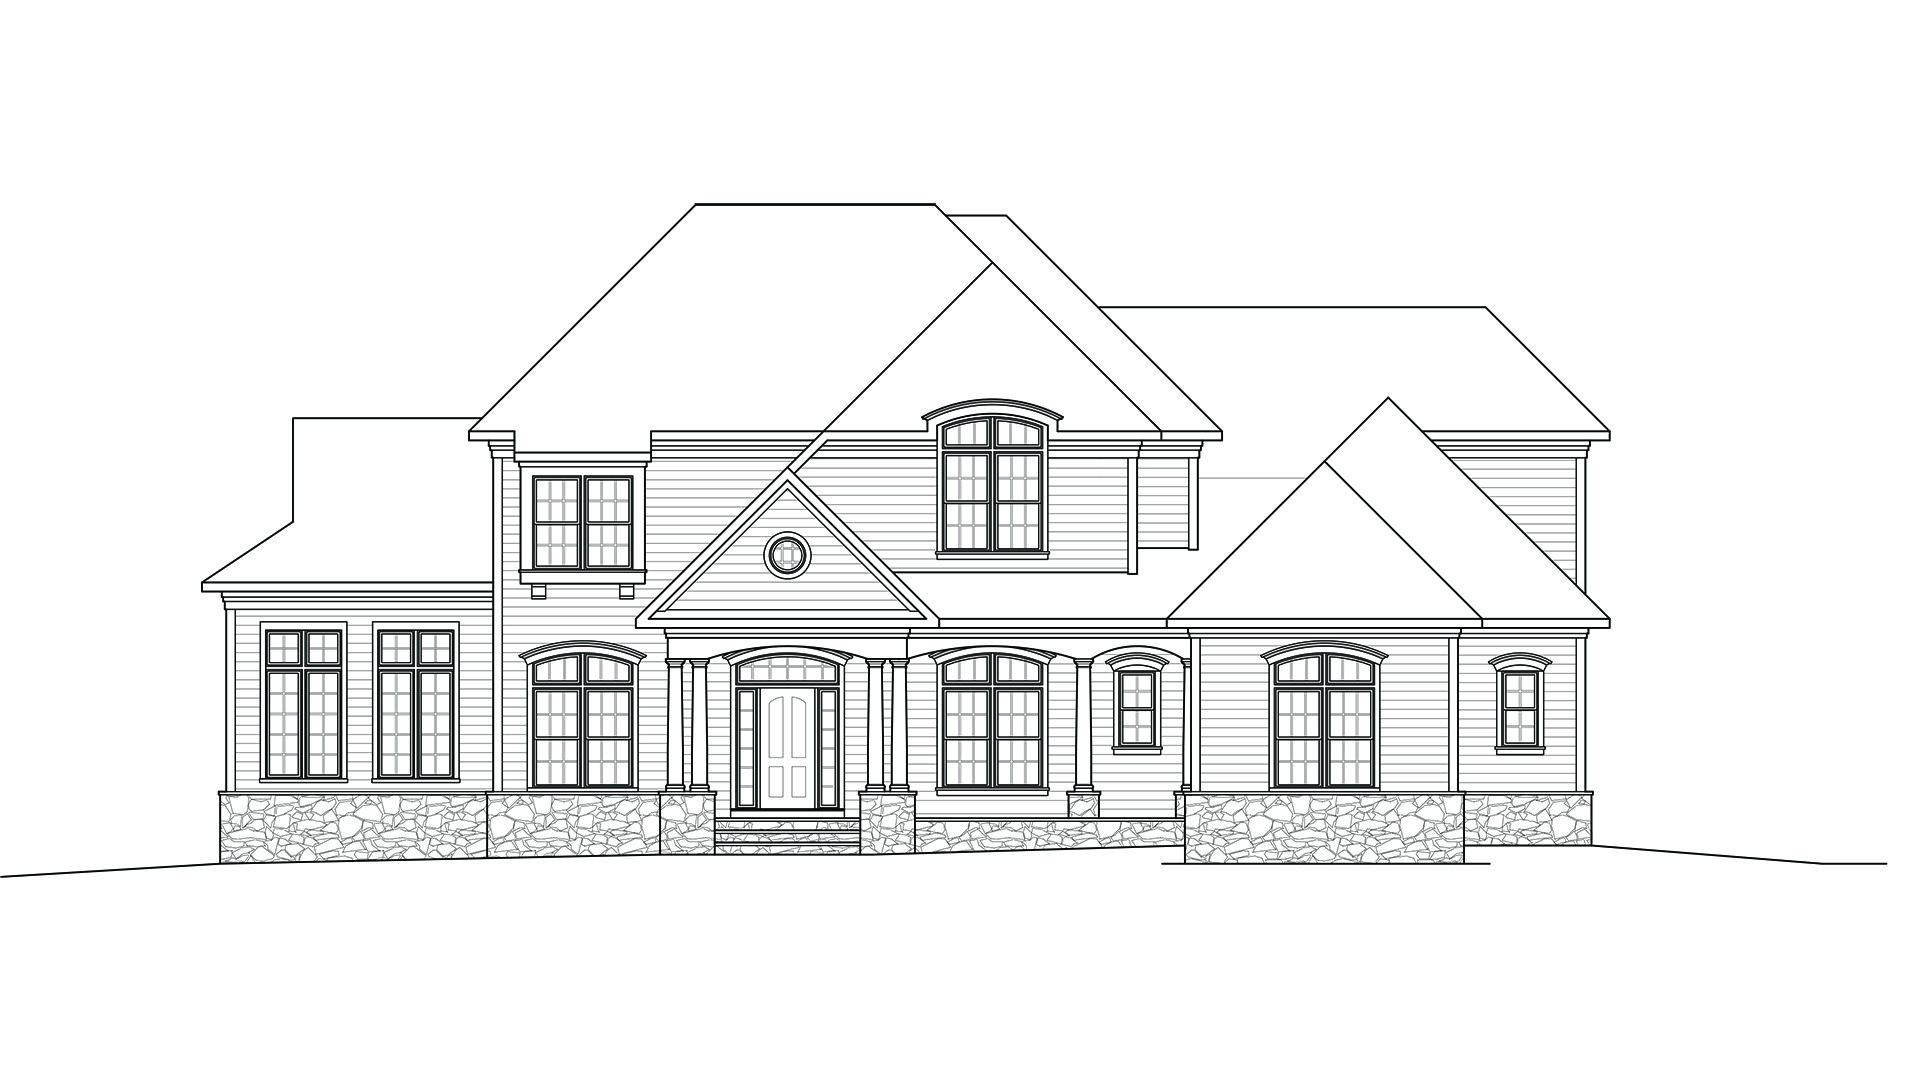 Preliminary design drawings for the new Grayson elevation, being considered for Vale Crest on Homesite 5.